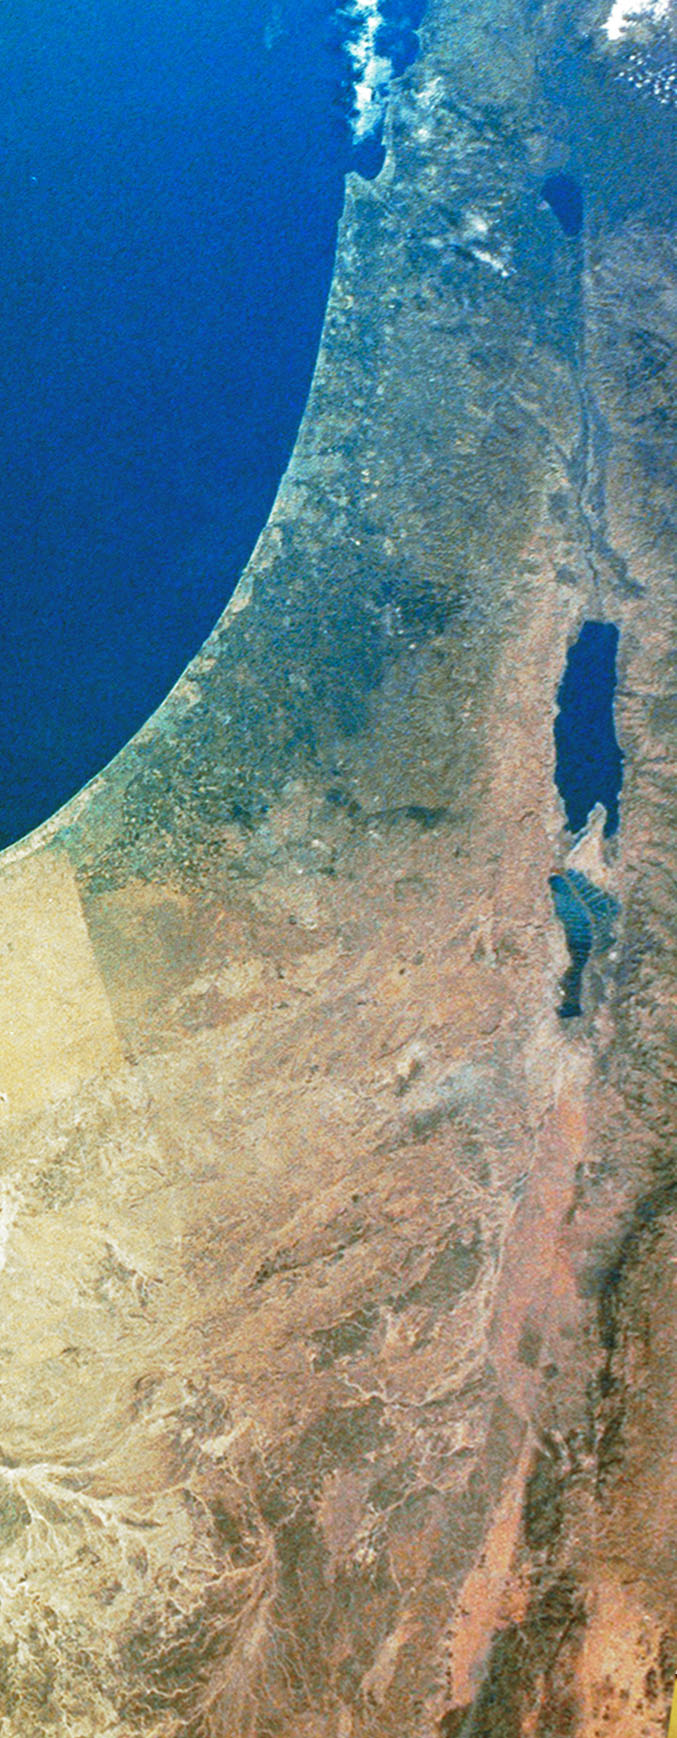 satellite map view with File Satellite Image Of Israel on Broadclyst further Openlayers Behaves Problematic After Certain Zoom Level In Google Maps Satellite also Ak aniak satellite furthermore File w w oeno island atol also Photo.